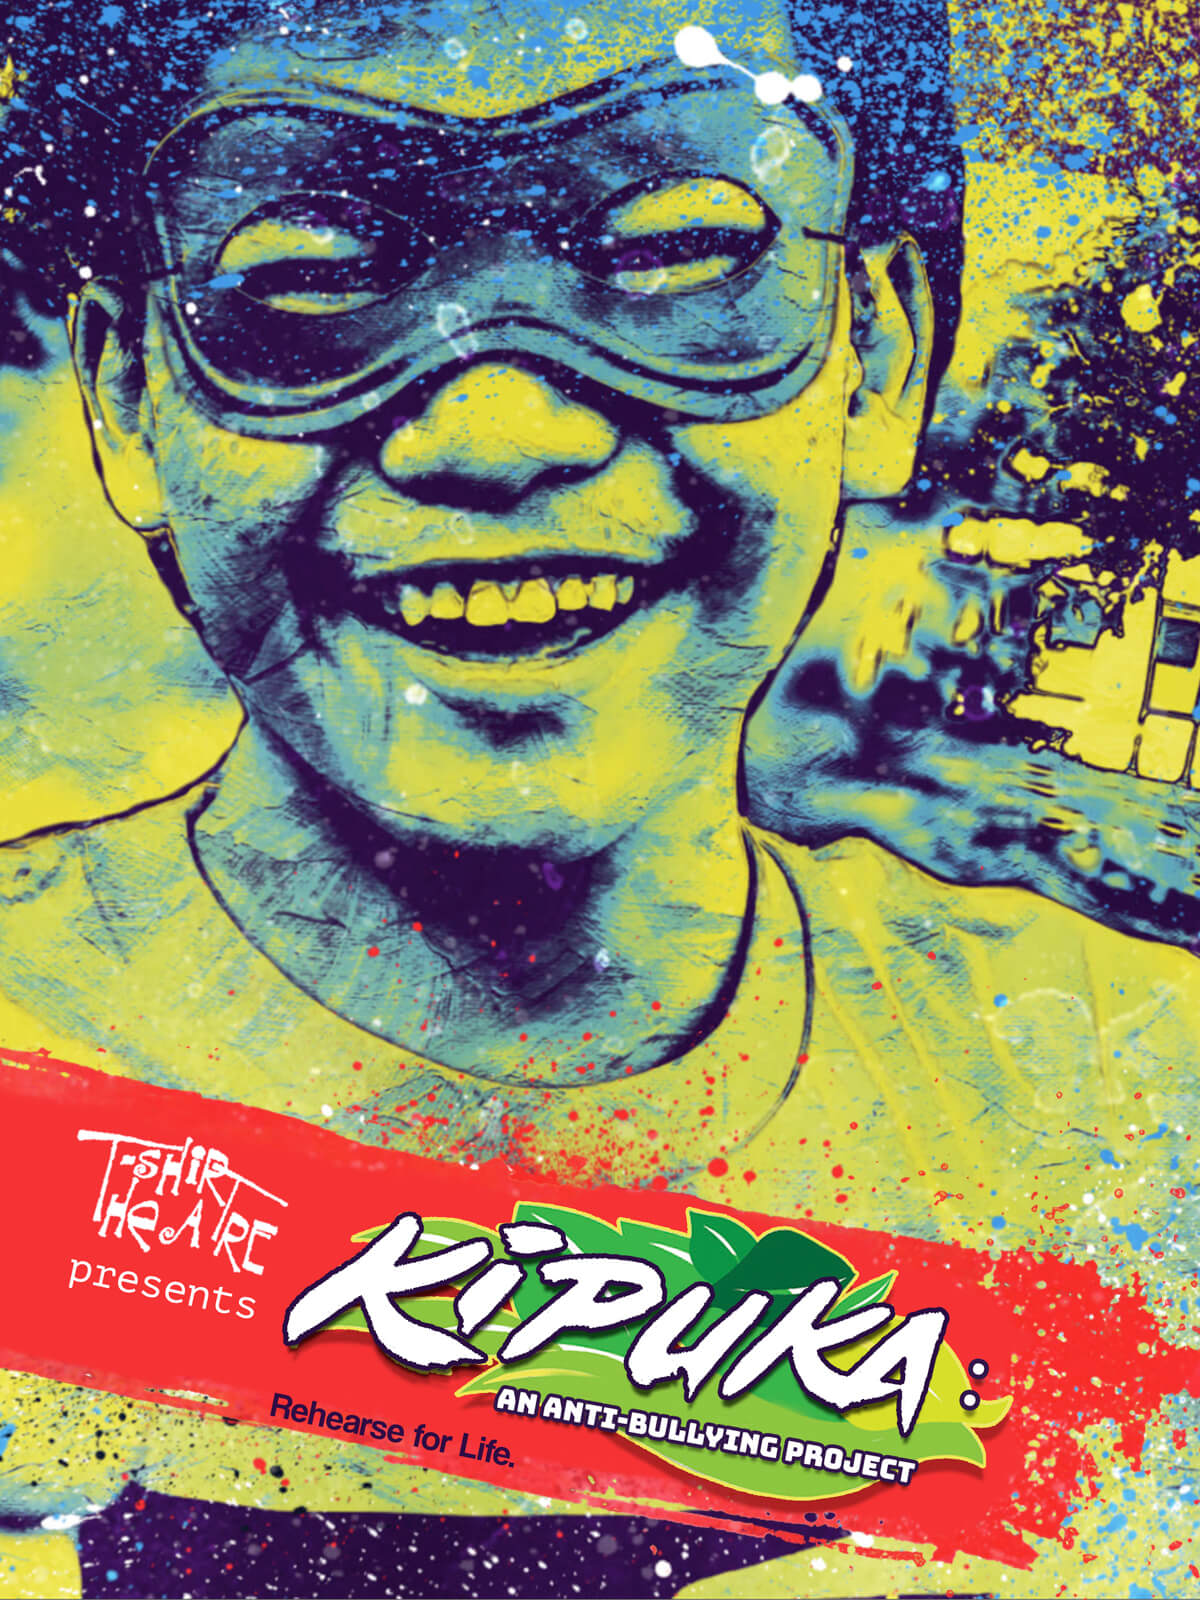 Kipuka 1200x1600 v3 KIPUKA: AN ANTI BULLYING PROJECT